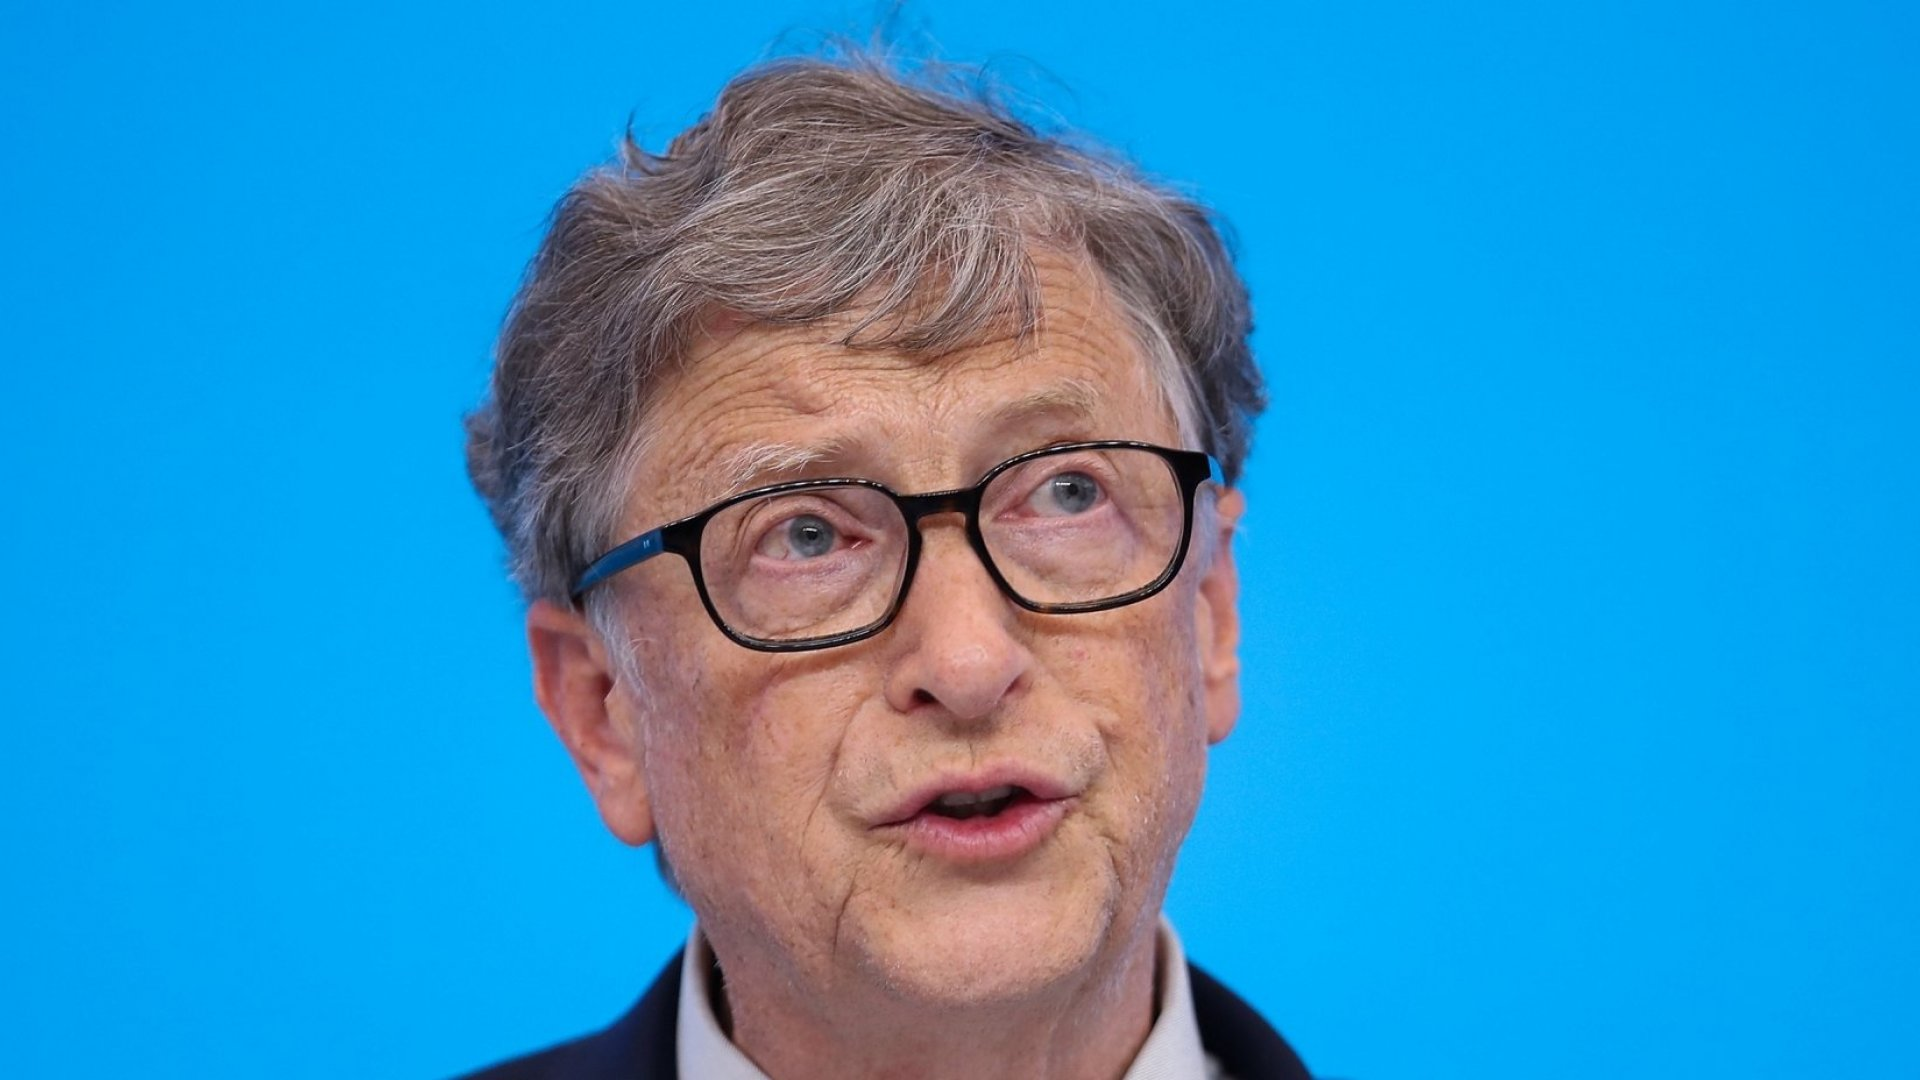 Bill Gates Used to Think Meditation Was More Trouble Than It Was Worth. Here's What Changed His Mind